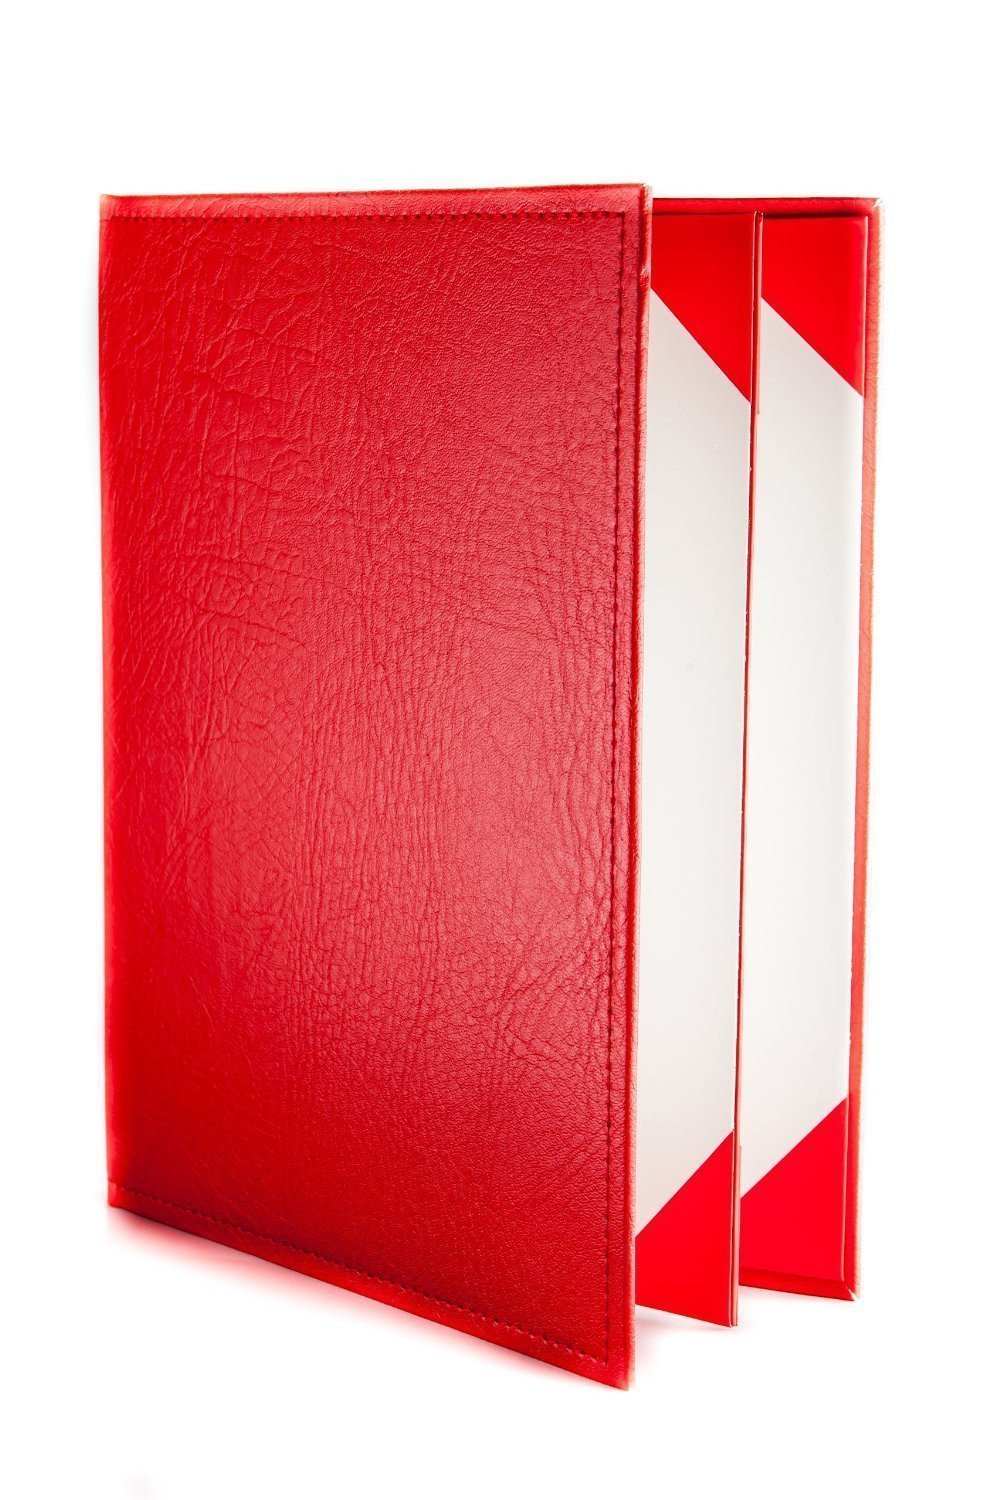 Menu Covers Made In Italian Faux Leather (12-Pack) - 8.5